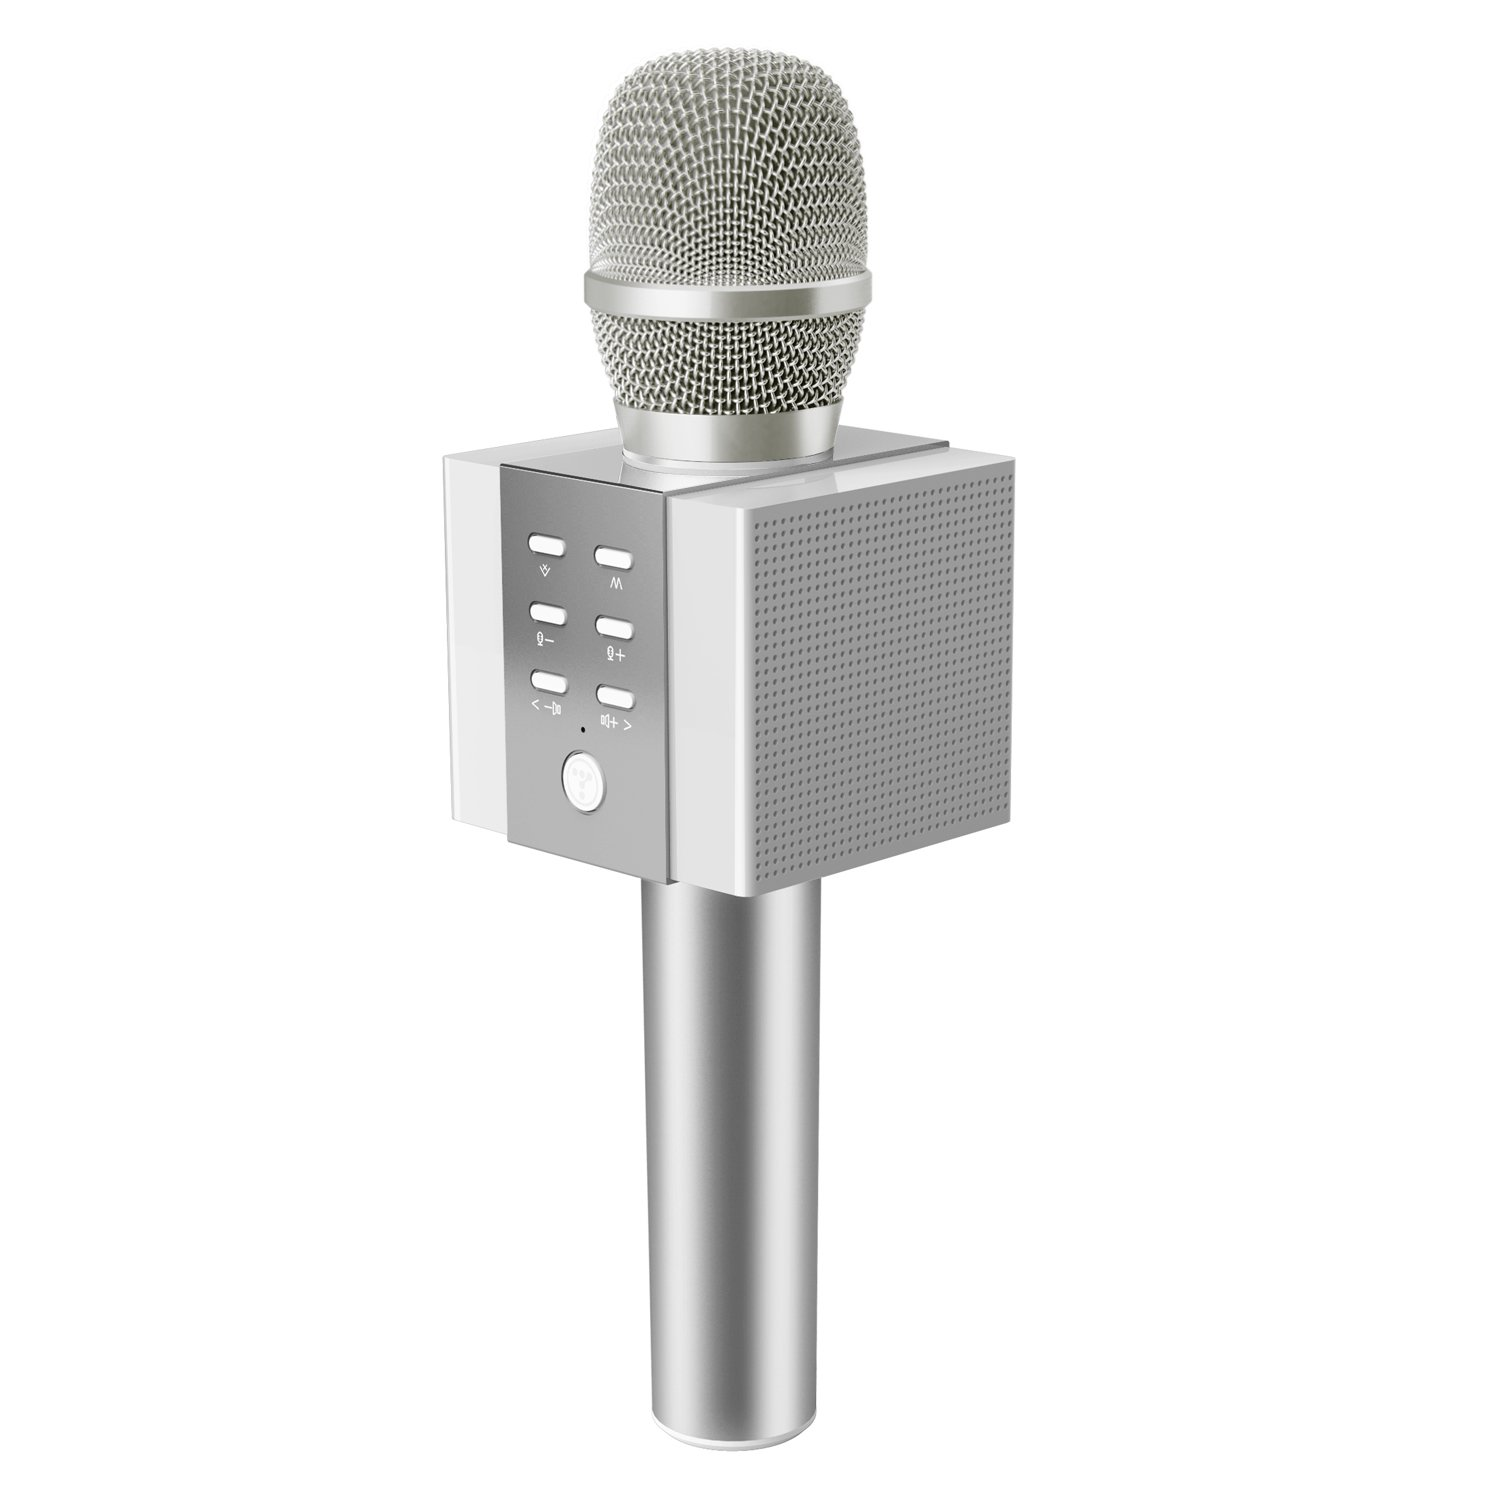 TOSING 008 Wireless Bluetooth Karaoke Microphone,Louder Volume 10W Power, More Bass, 3-in-1 Portable Handheld Double Speaker Mic Machine for iPhone/Android/iPad/PC(Silver) Shenzhen Teana Technology Co. Ltd 008-1